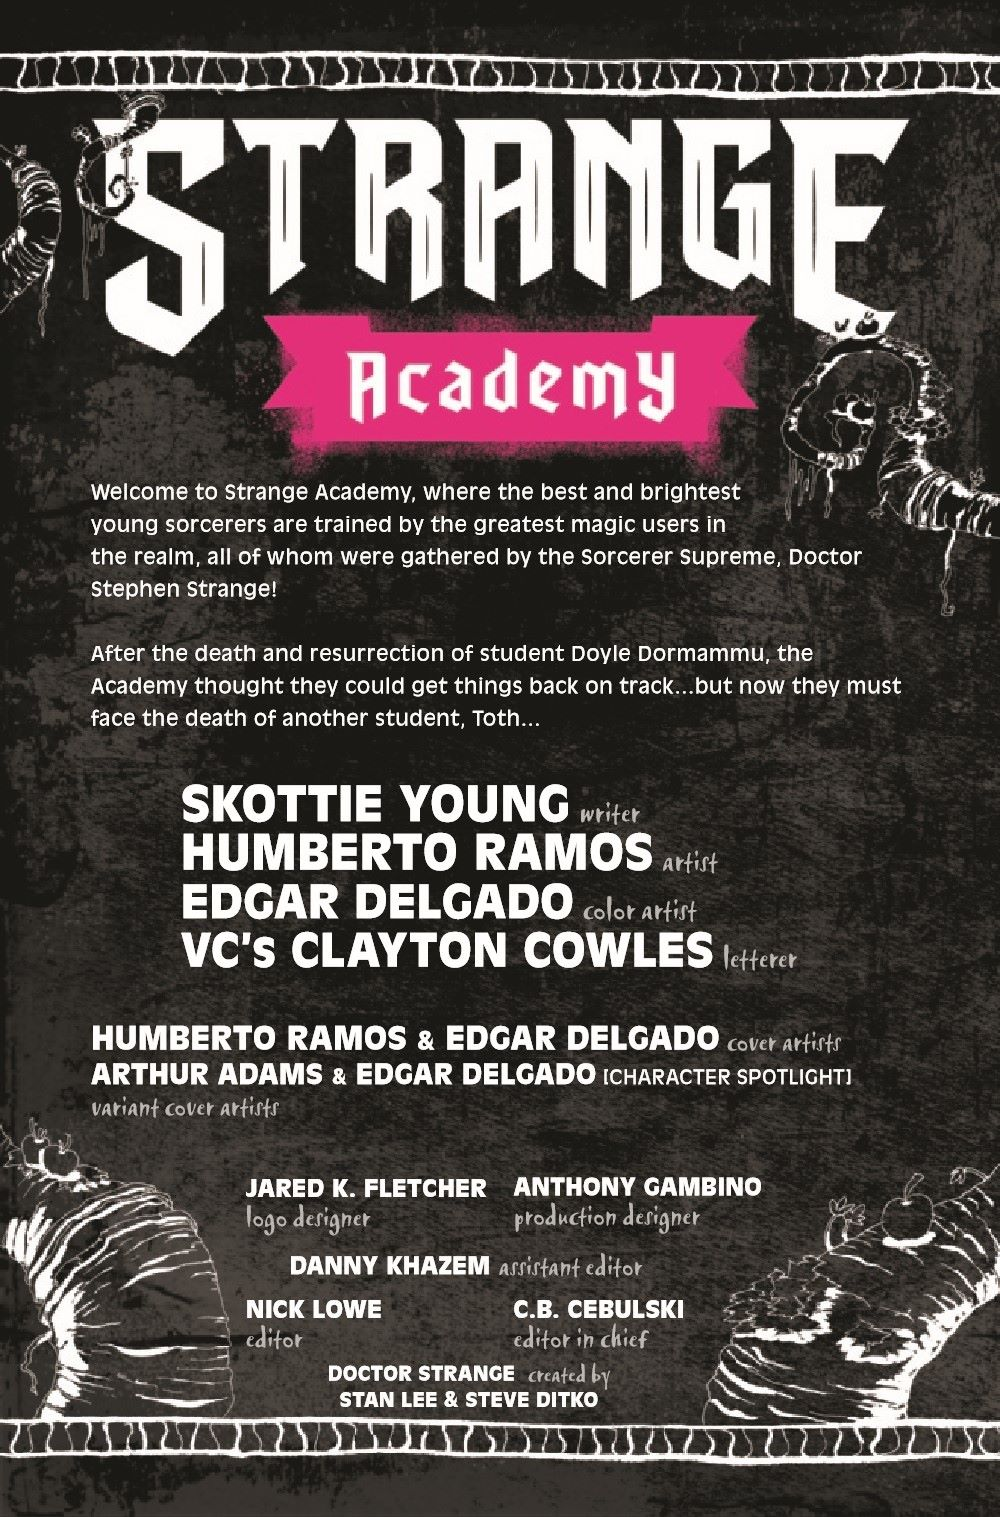 STRACADEMY2020011_Preview-2 ComicList Previews: STRANGE ACADEMY #11